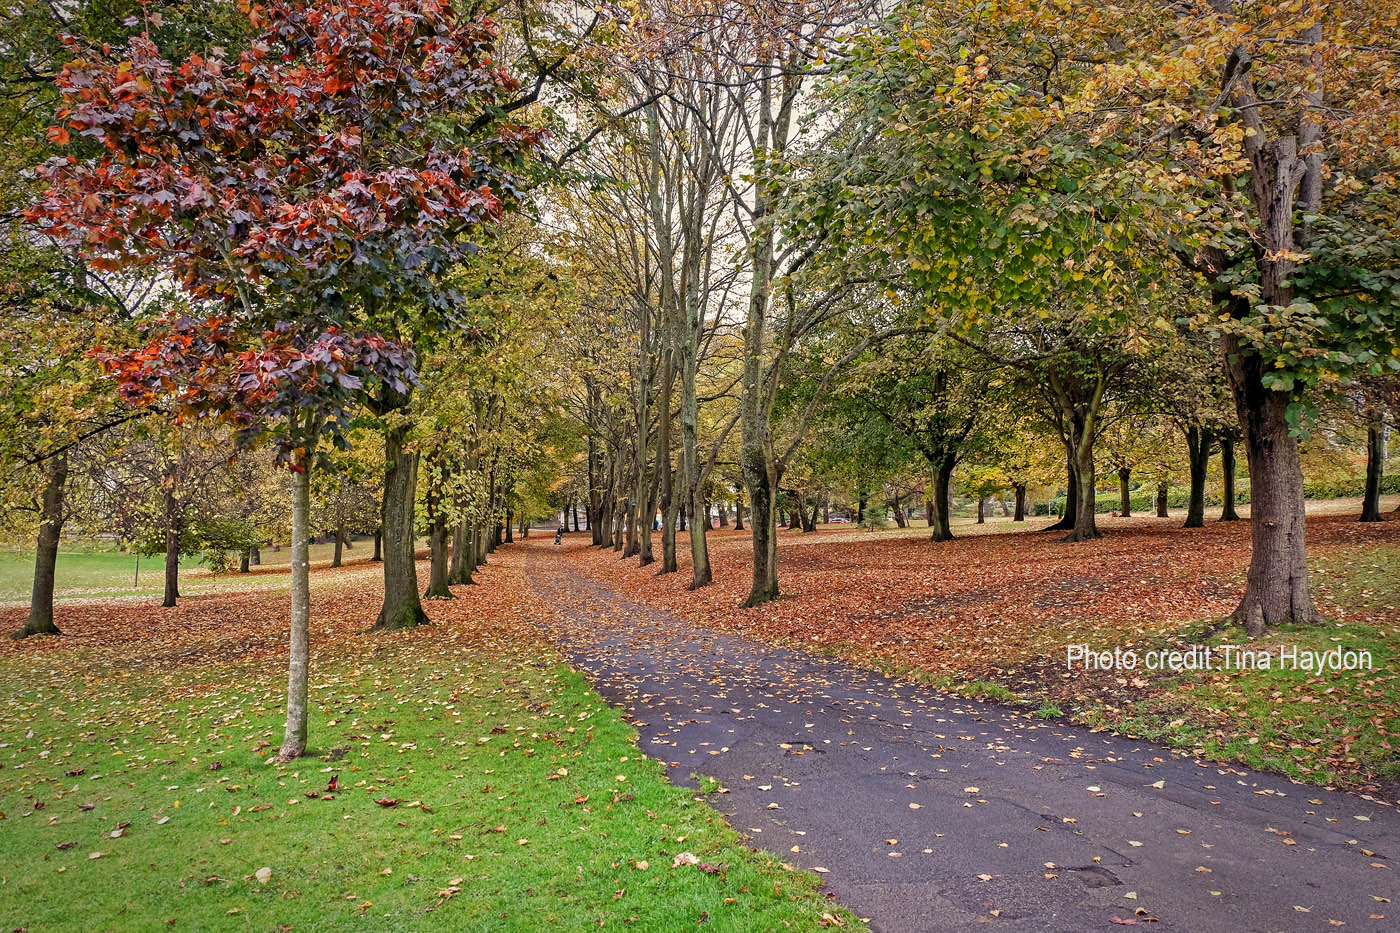 Romilly Park